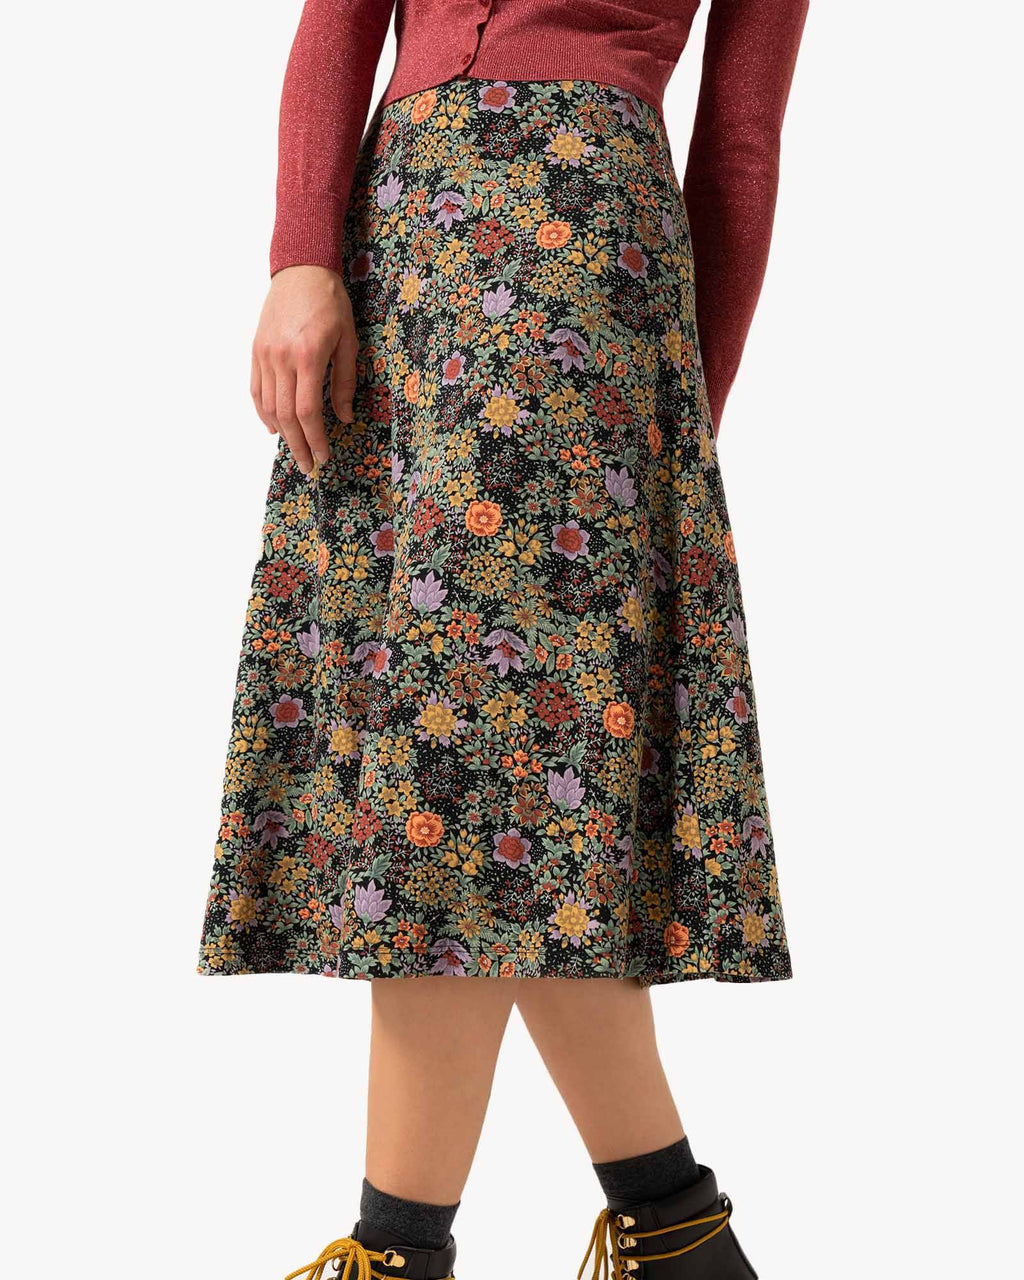 variant_2 | EN Colorful printed flowers Skirt Women | DE Bunter Rock mit print blumen Damen